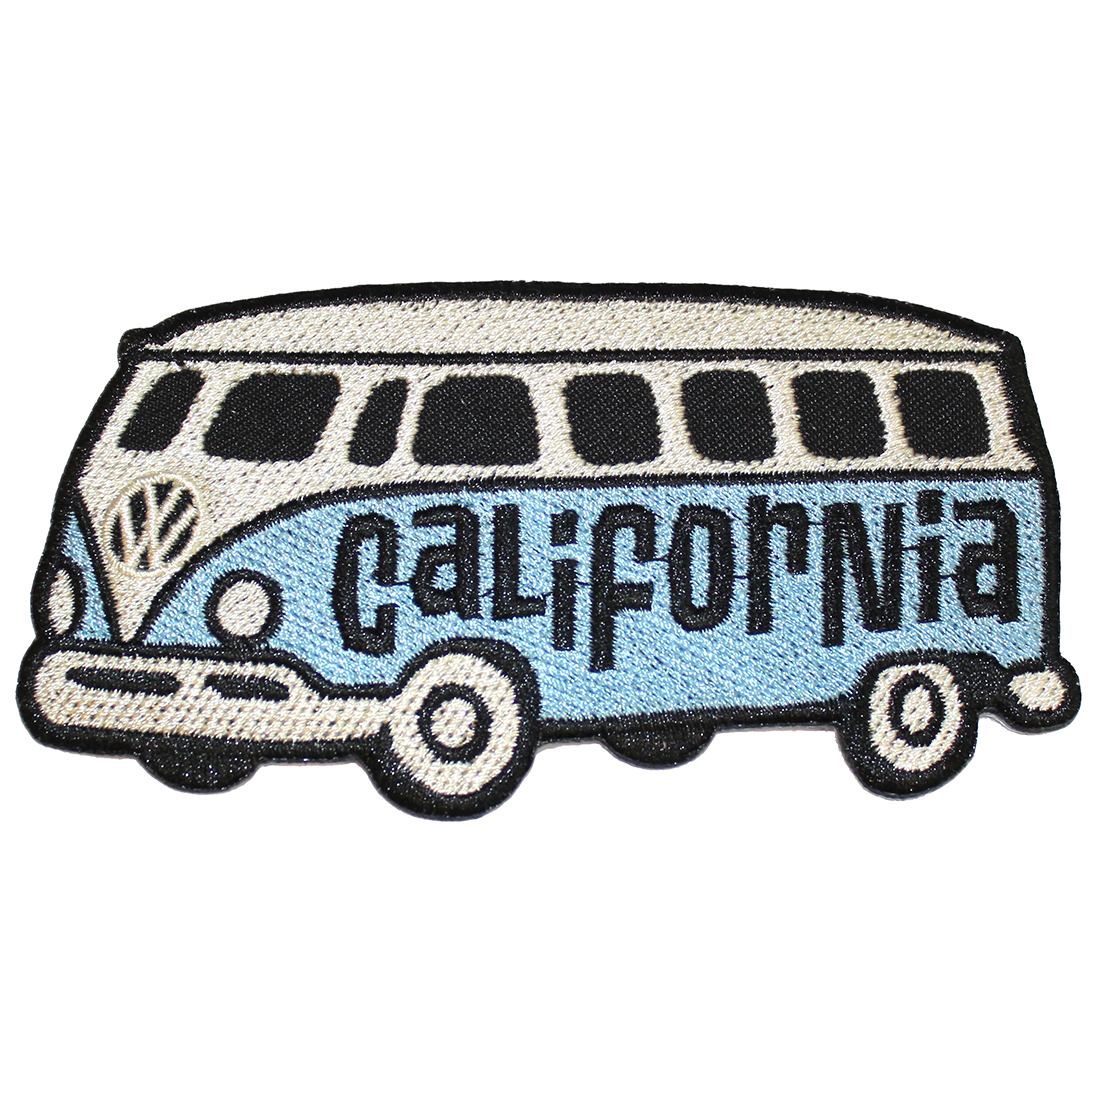 California Bus Patch